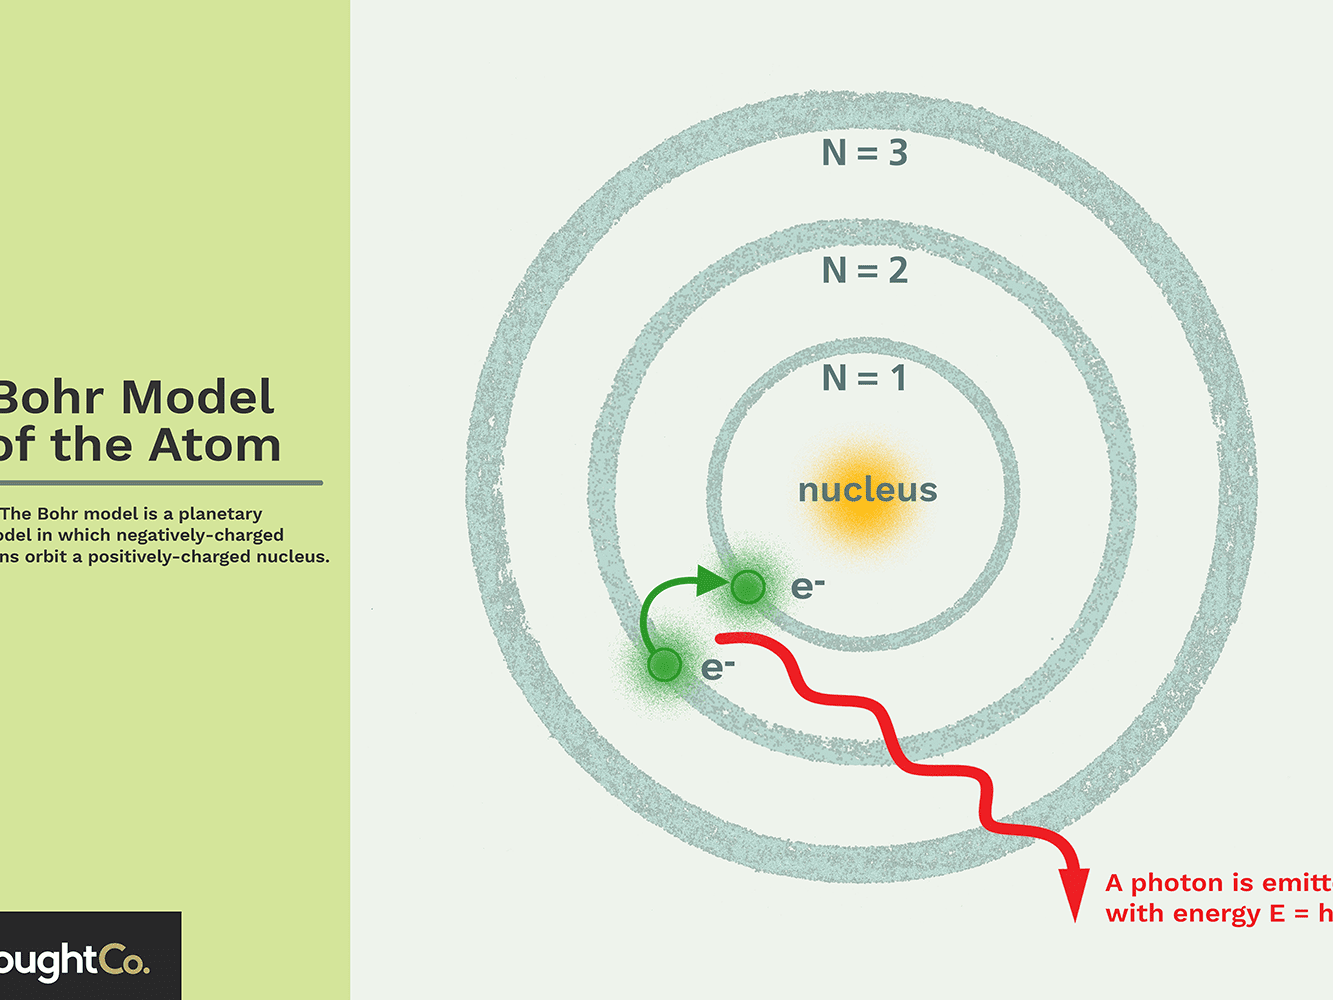 Bohr Model of the Atom - Overview and Examples